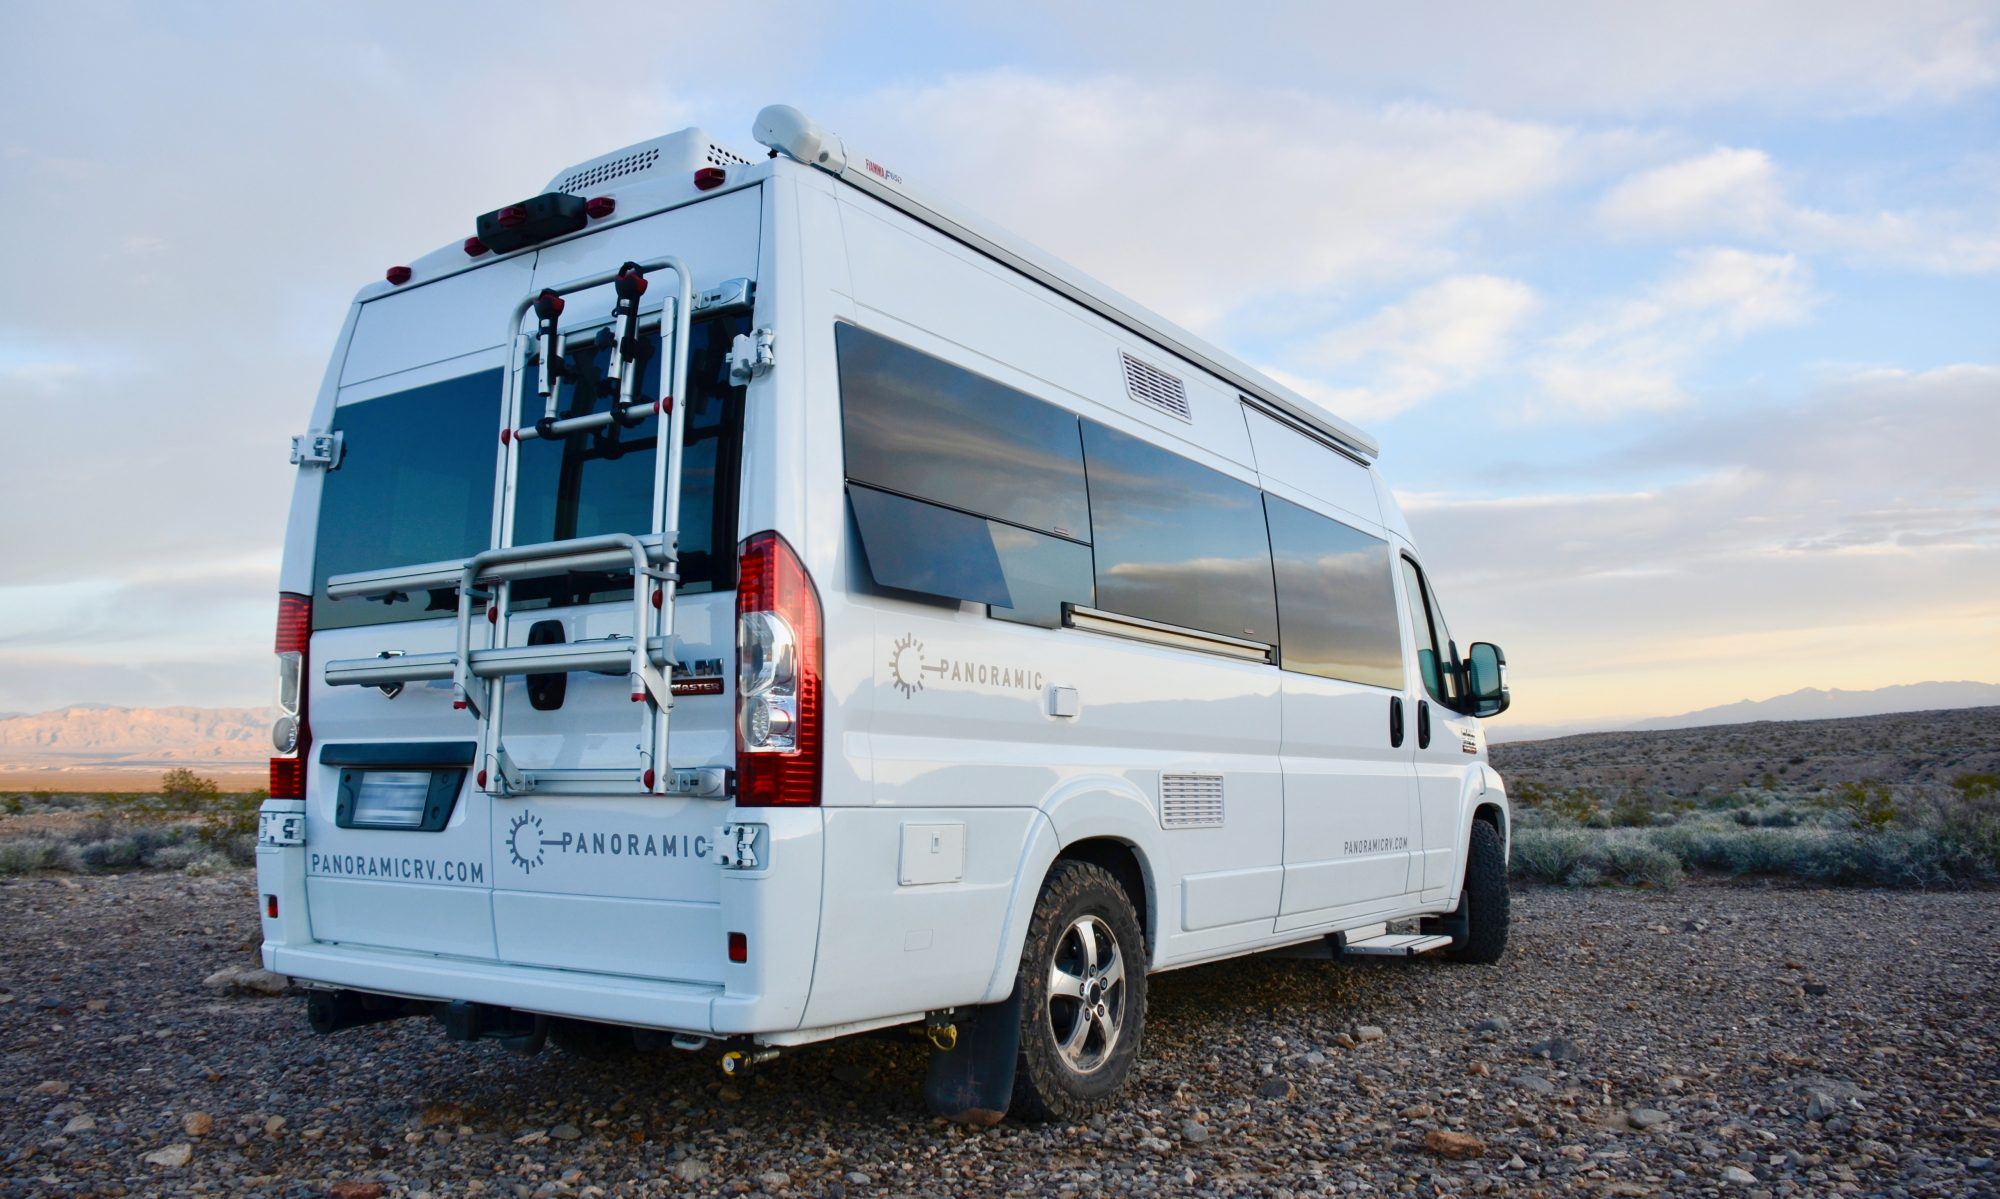 PANORAMIC RV